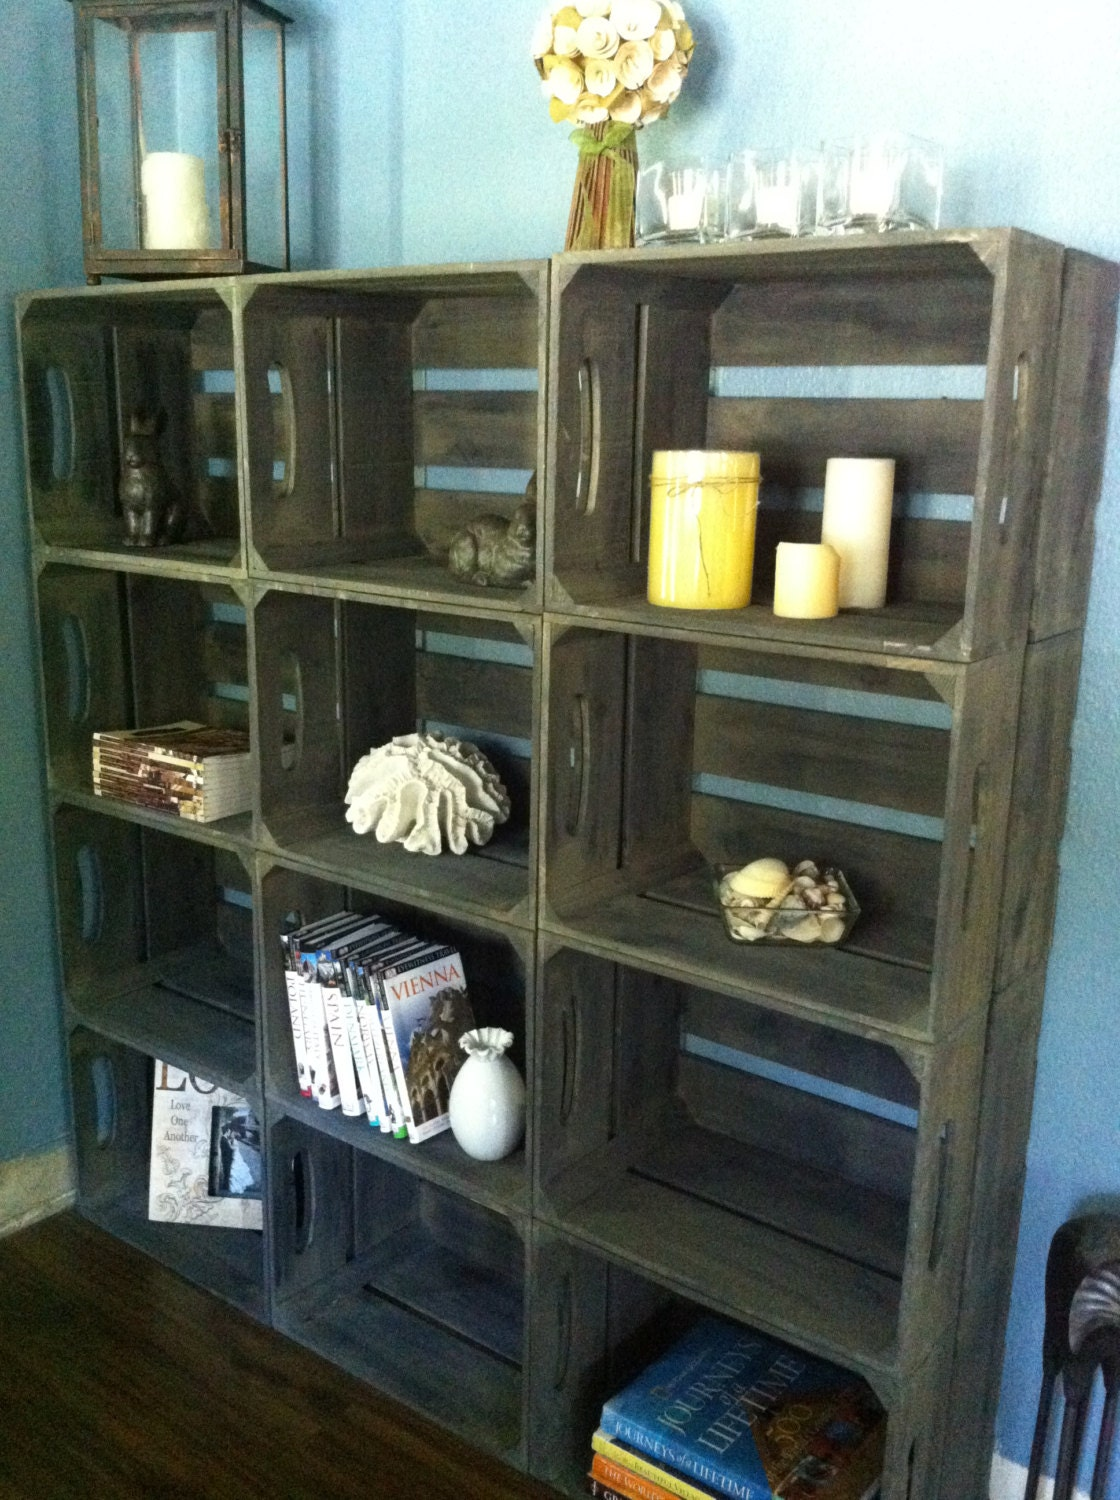 15pc rustic wooden apple crate bookshelf with by designedforuse. Black Bedroom Furniture Sets. Home Design Ideas